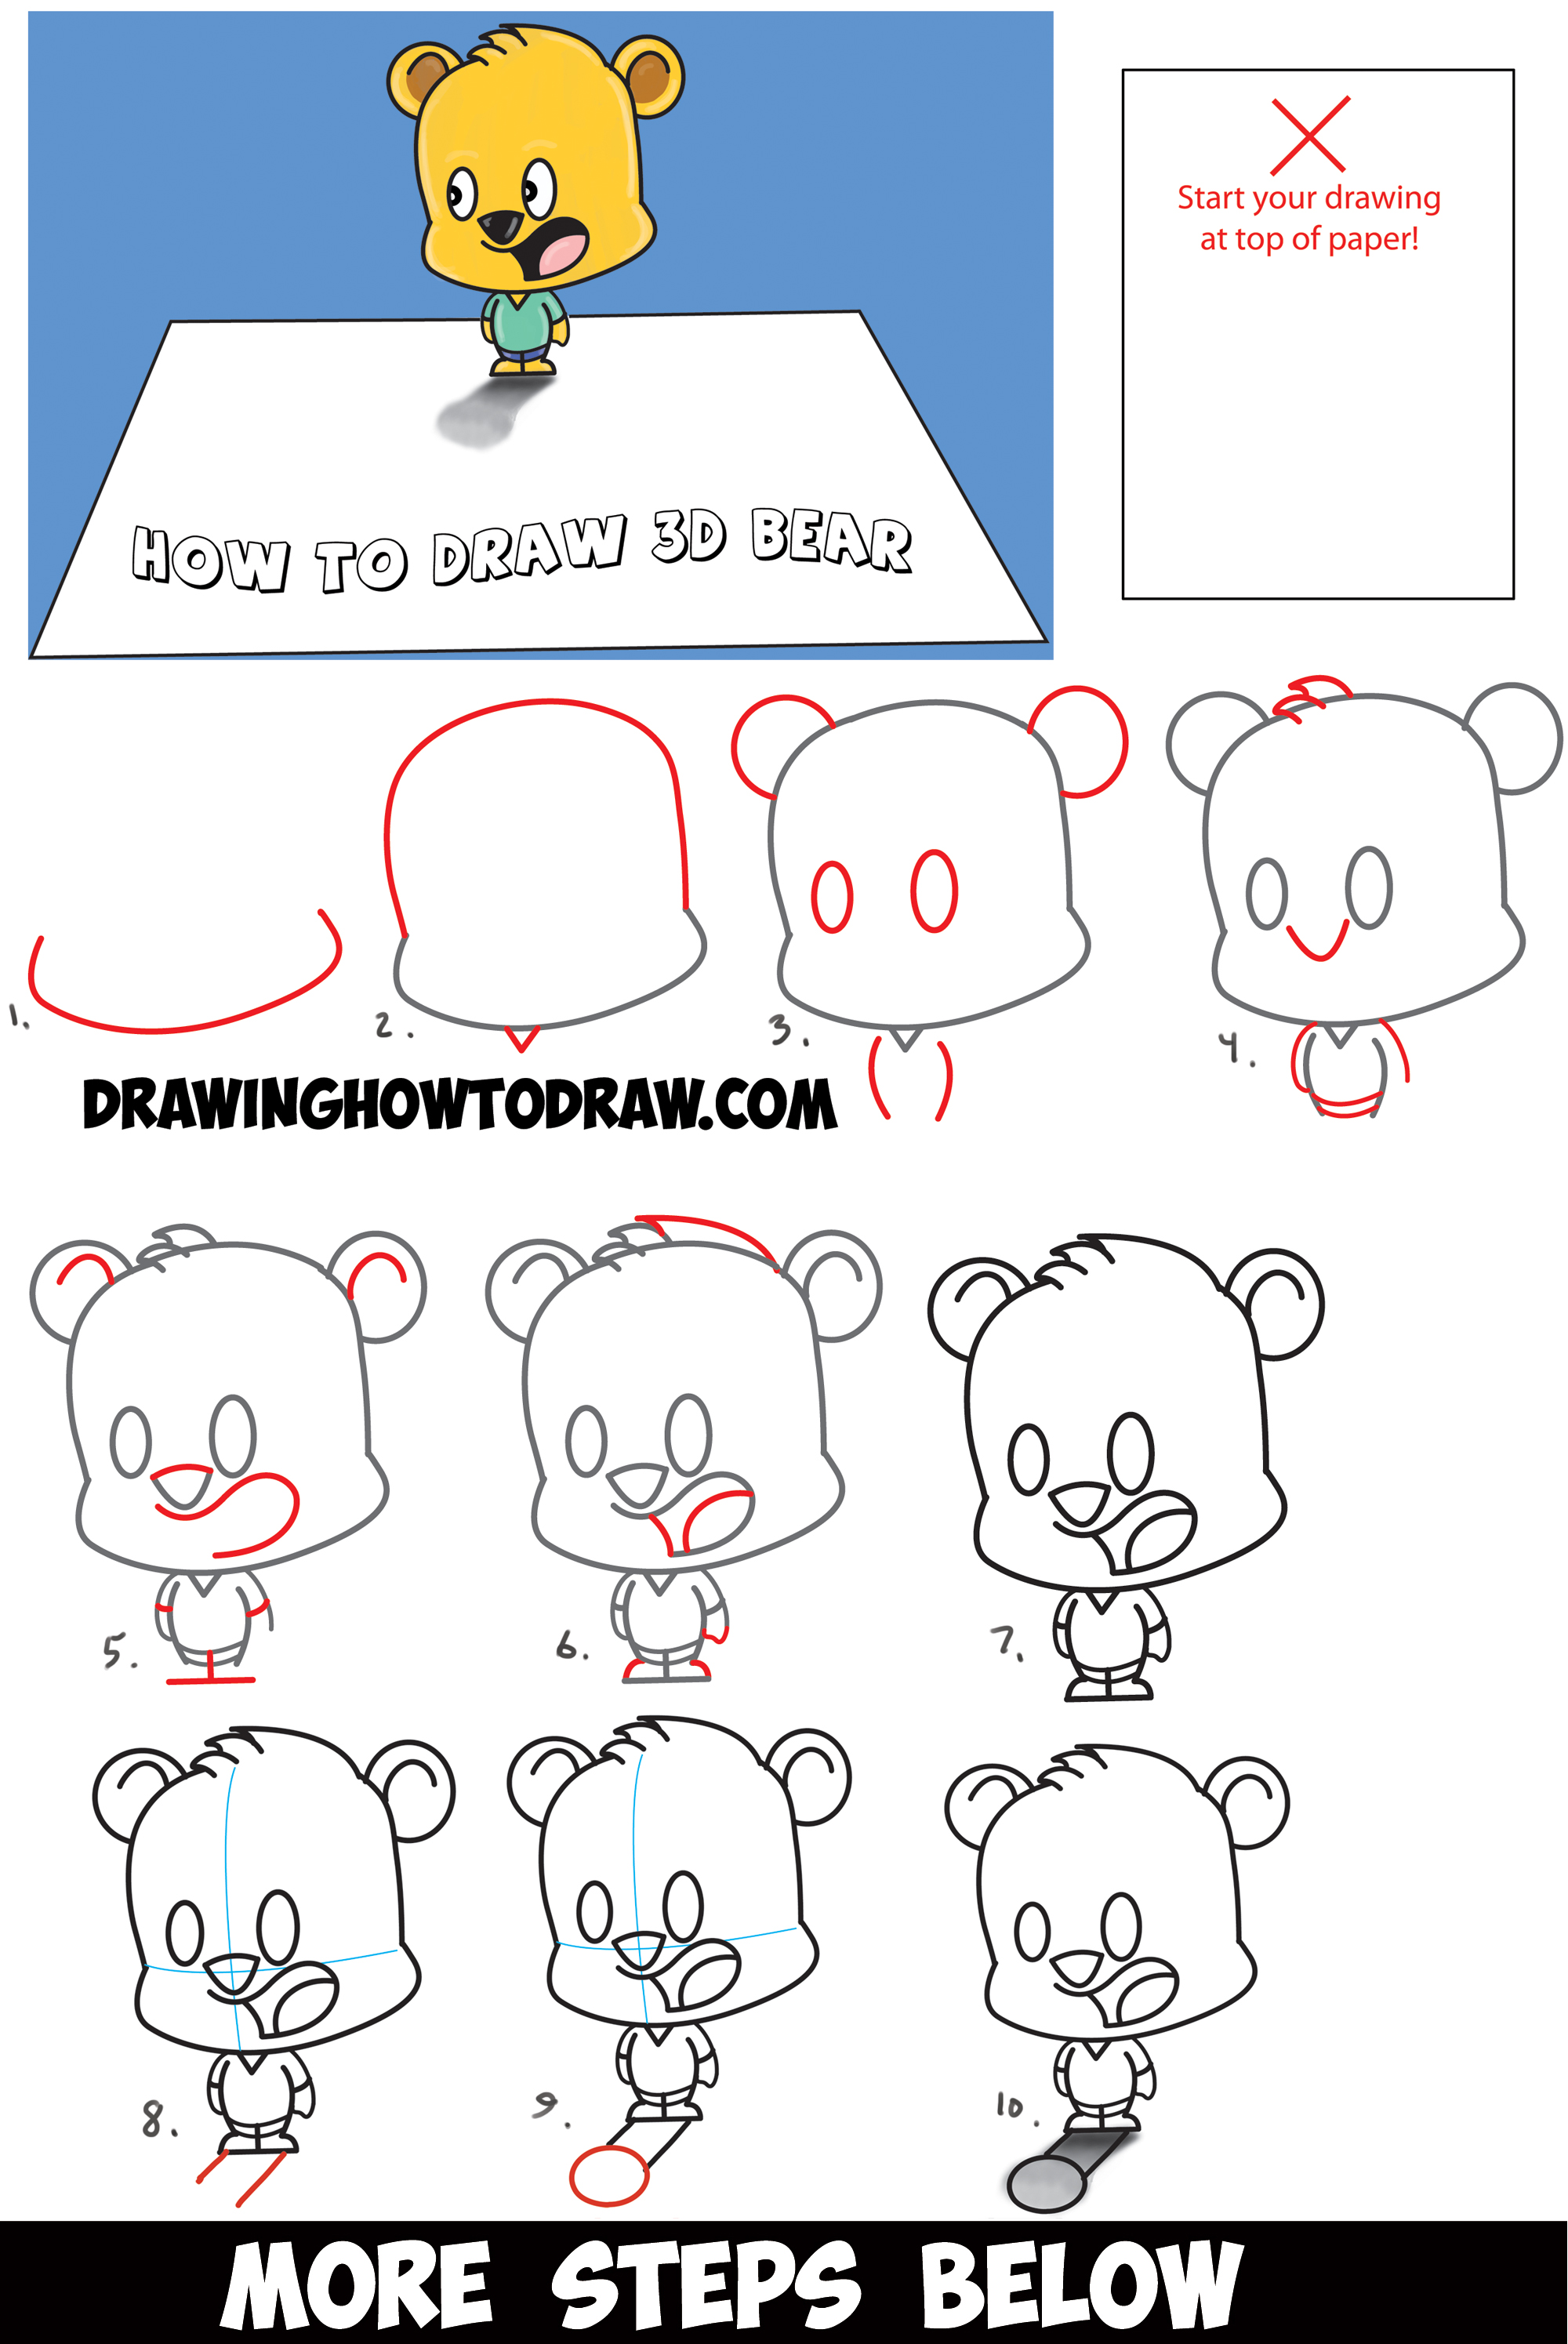 How to draw 3d cartoon bear standing on top of piece of paper optical illusion